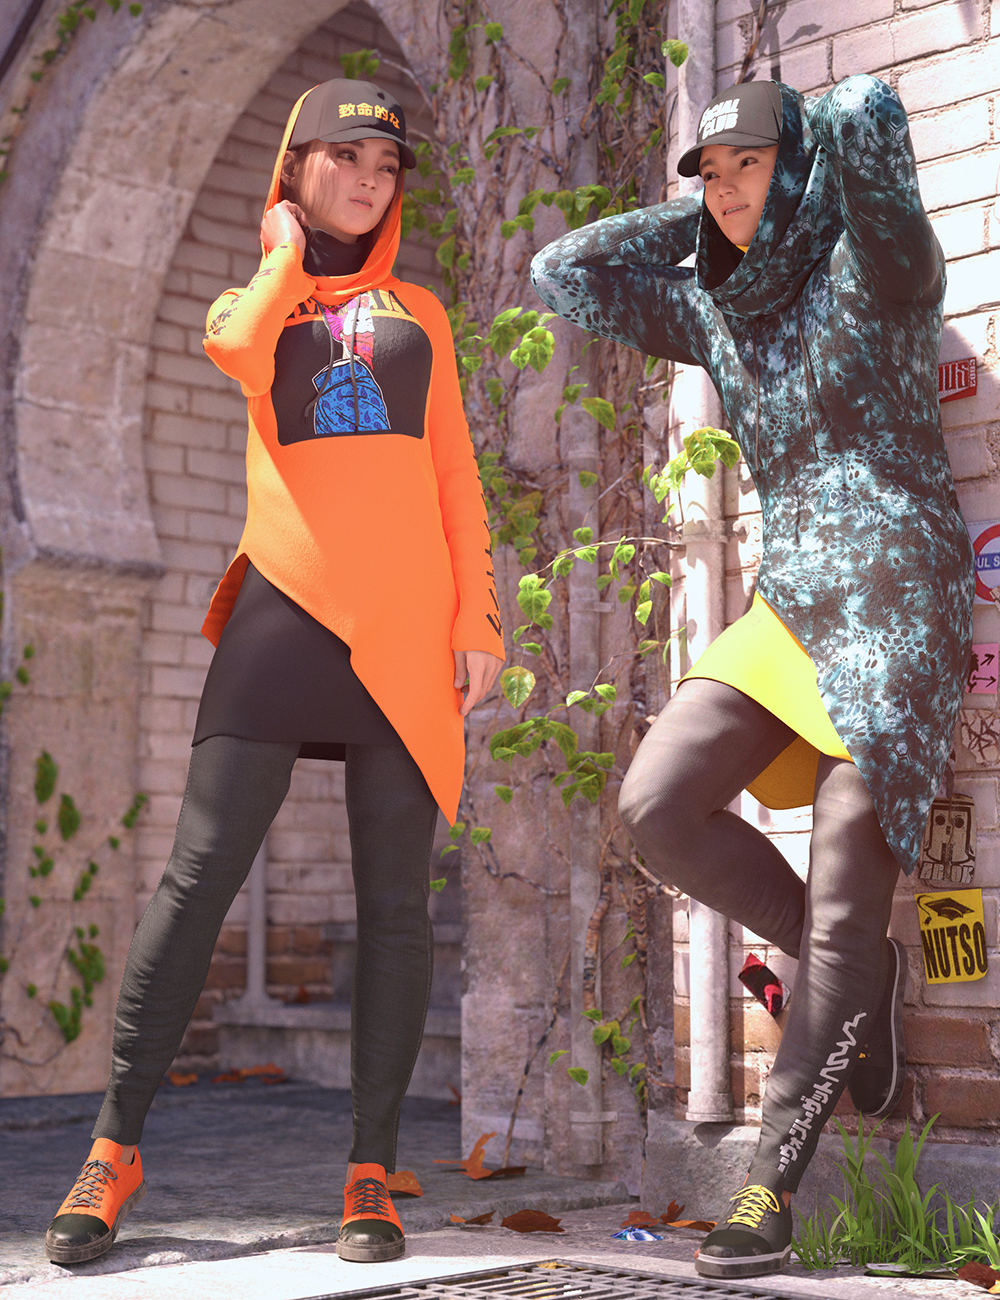 dForce Rebirth Outfit Textures by: Moonscape GraphicsSade, 3D Models by Daz 3D